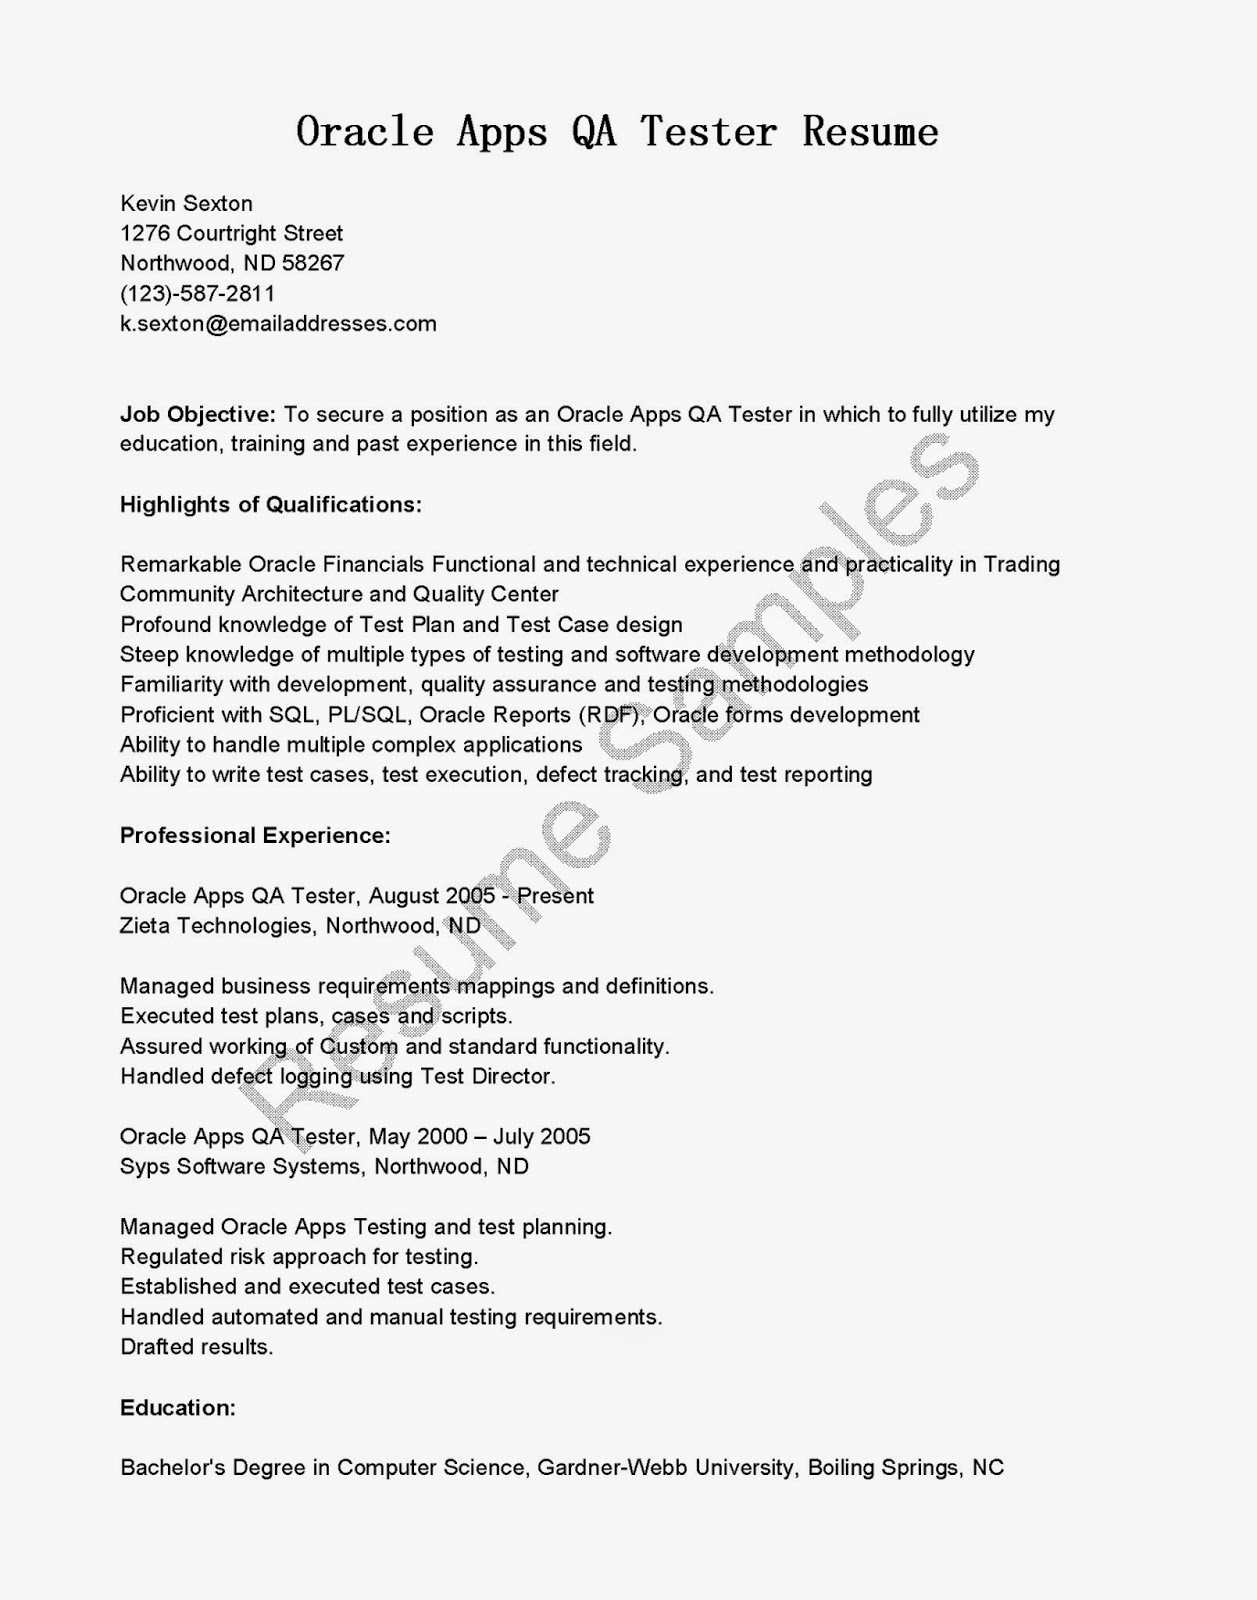 Civil engineering resume help cover letter for web designer  sample resume for food service